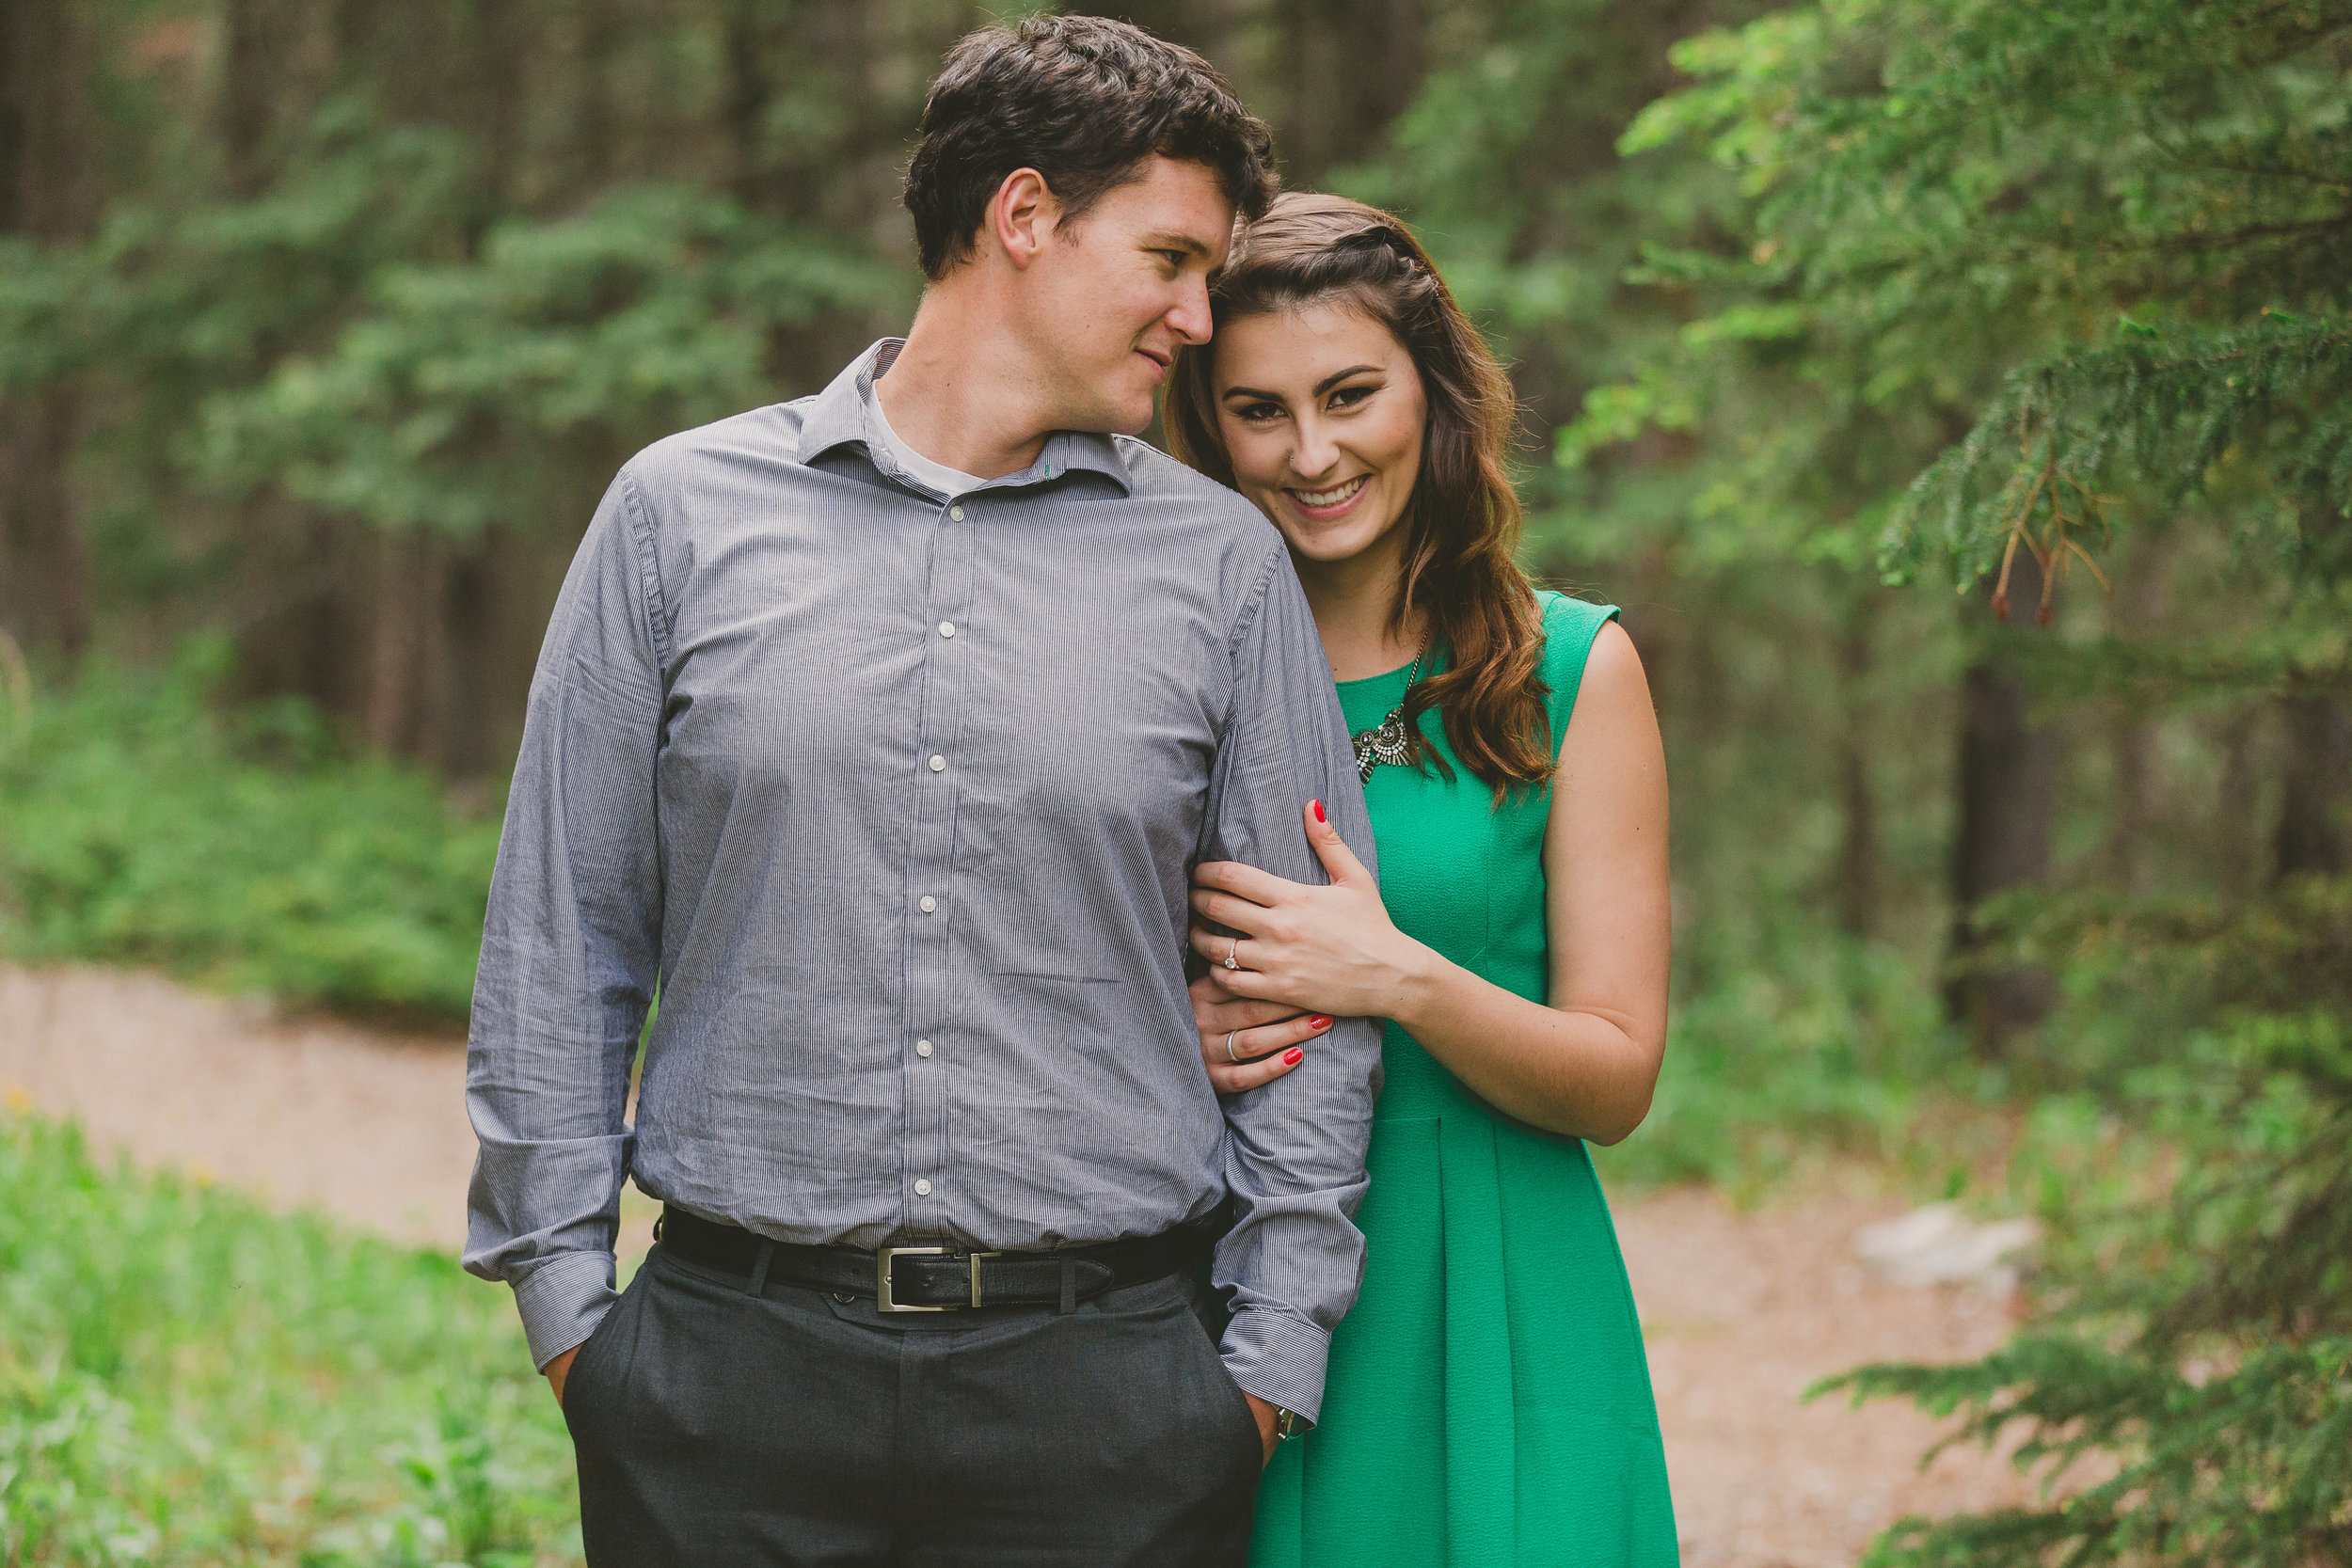 EngagementIza&Matthew (110 of 211).jpg